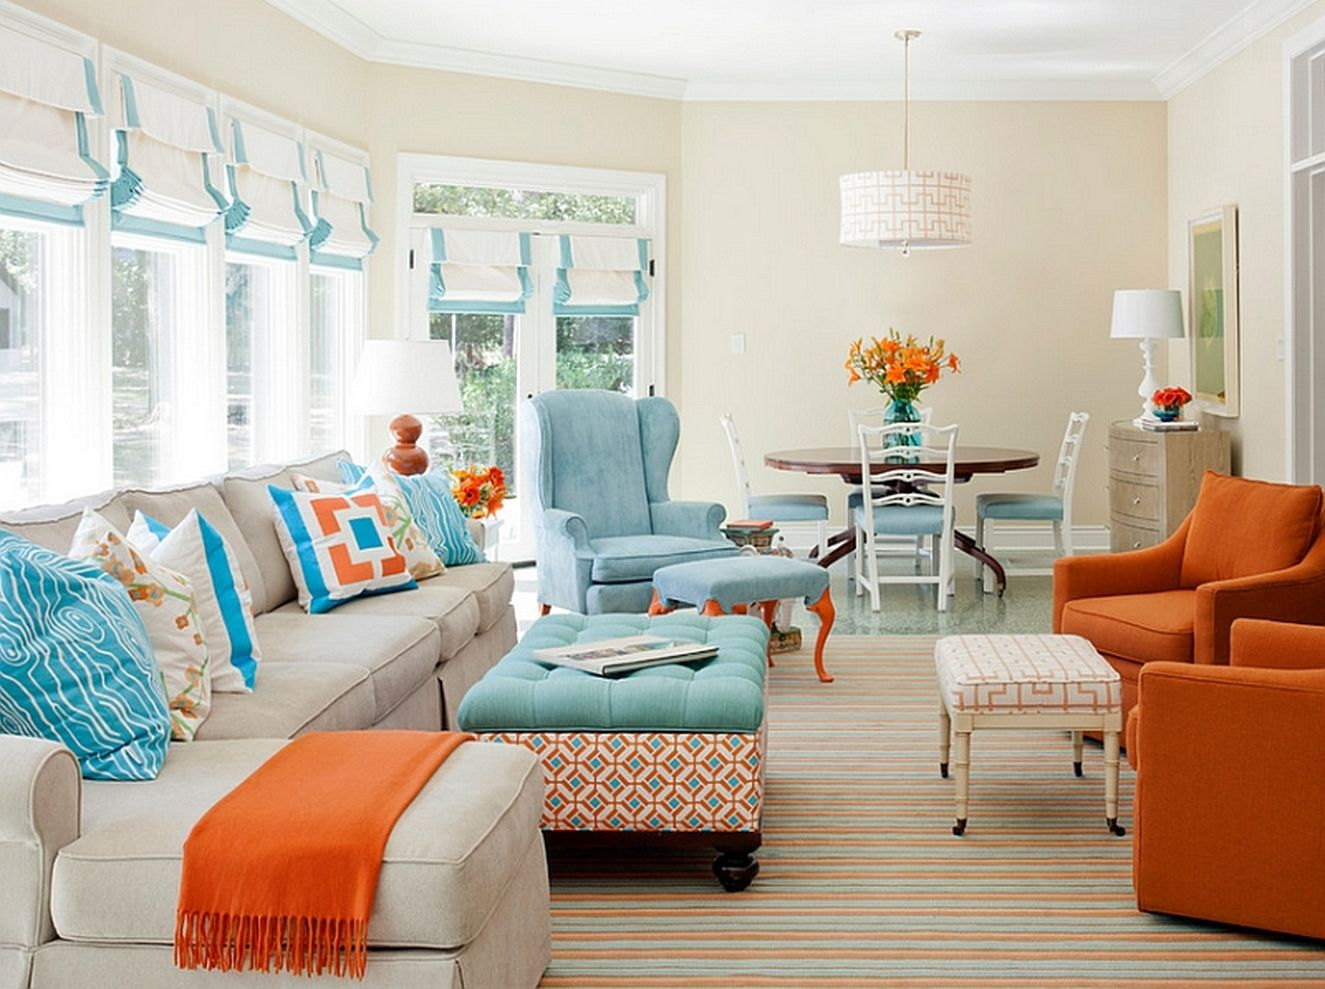 Lovely 53 Adorable Burnt Orange And Teal Living Room Ideas - Round Decor regarding Burnt Orange Living Room